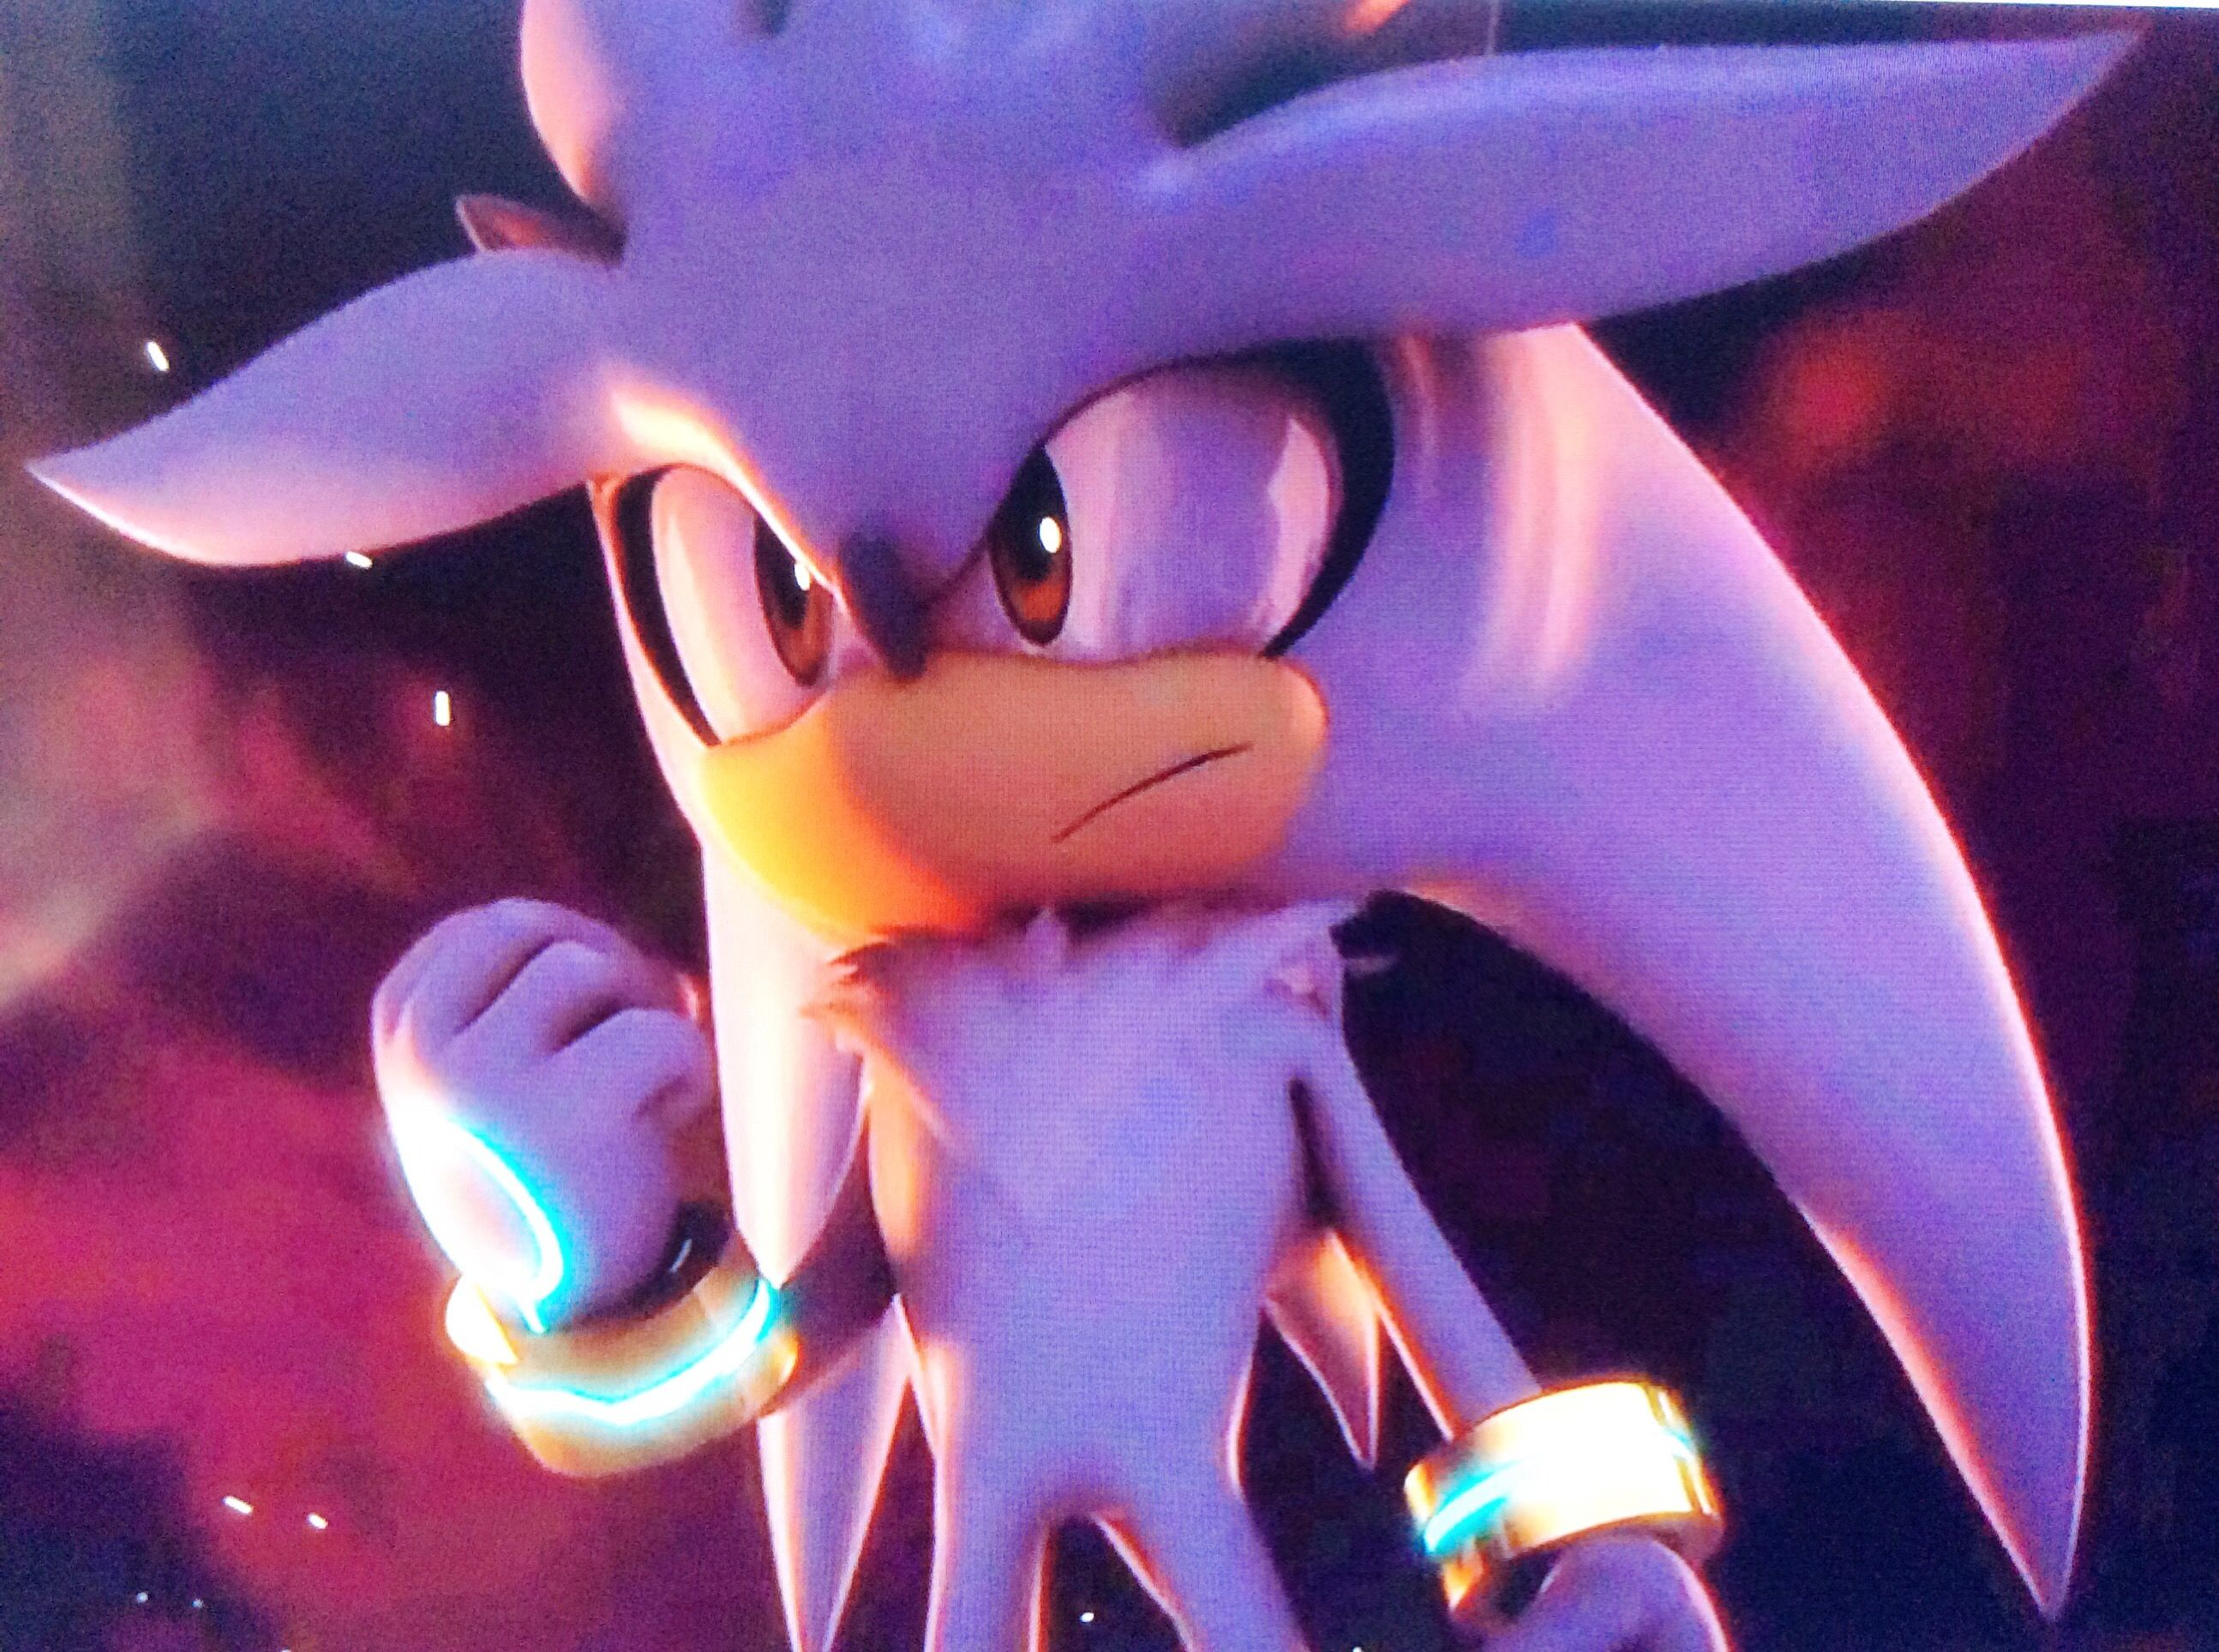 Silver From Sonic 2006